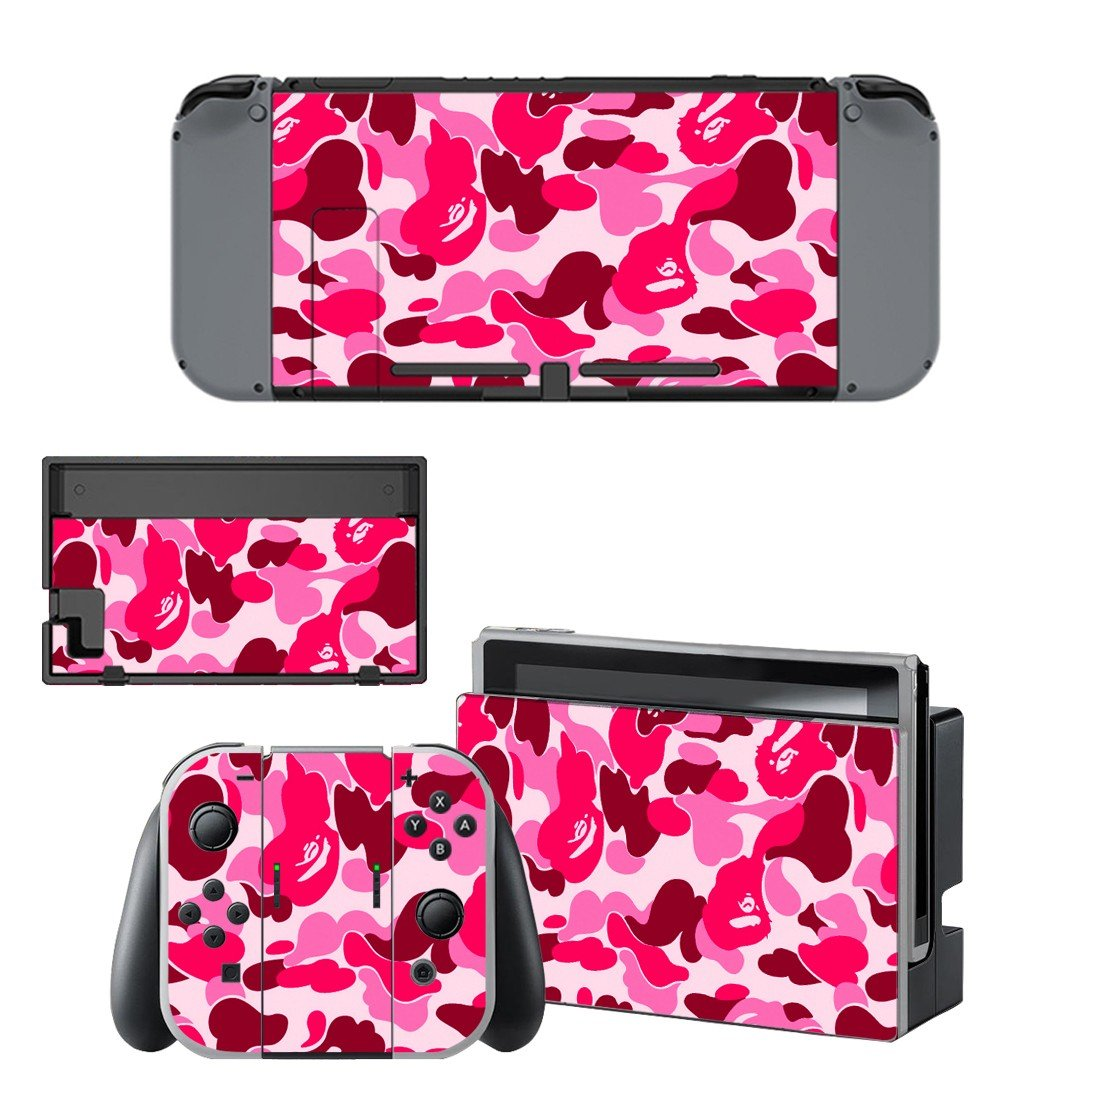 Camouflage decal for Nintendo switch console sticker skin